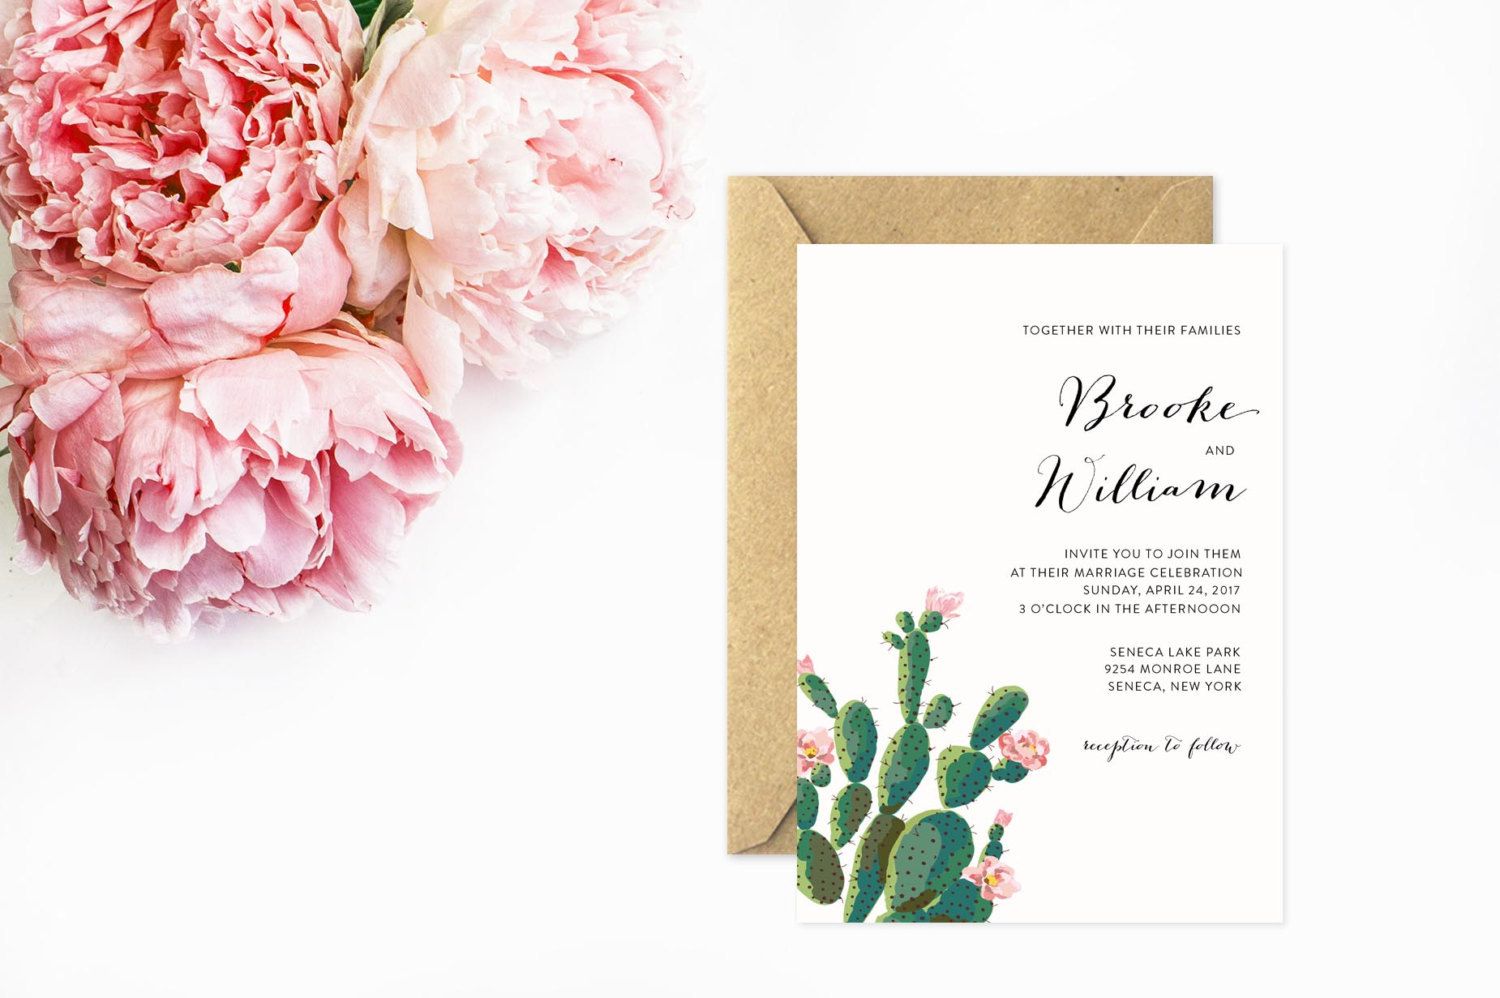 Wedding invitations roundup| via www.one-o.it | #inspiration #party #wedding #card